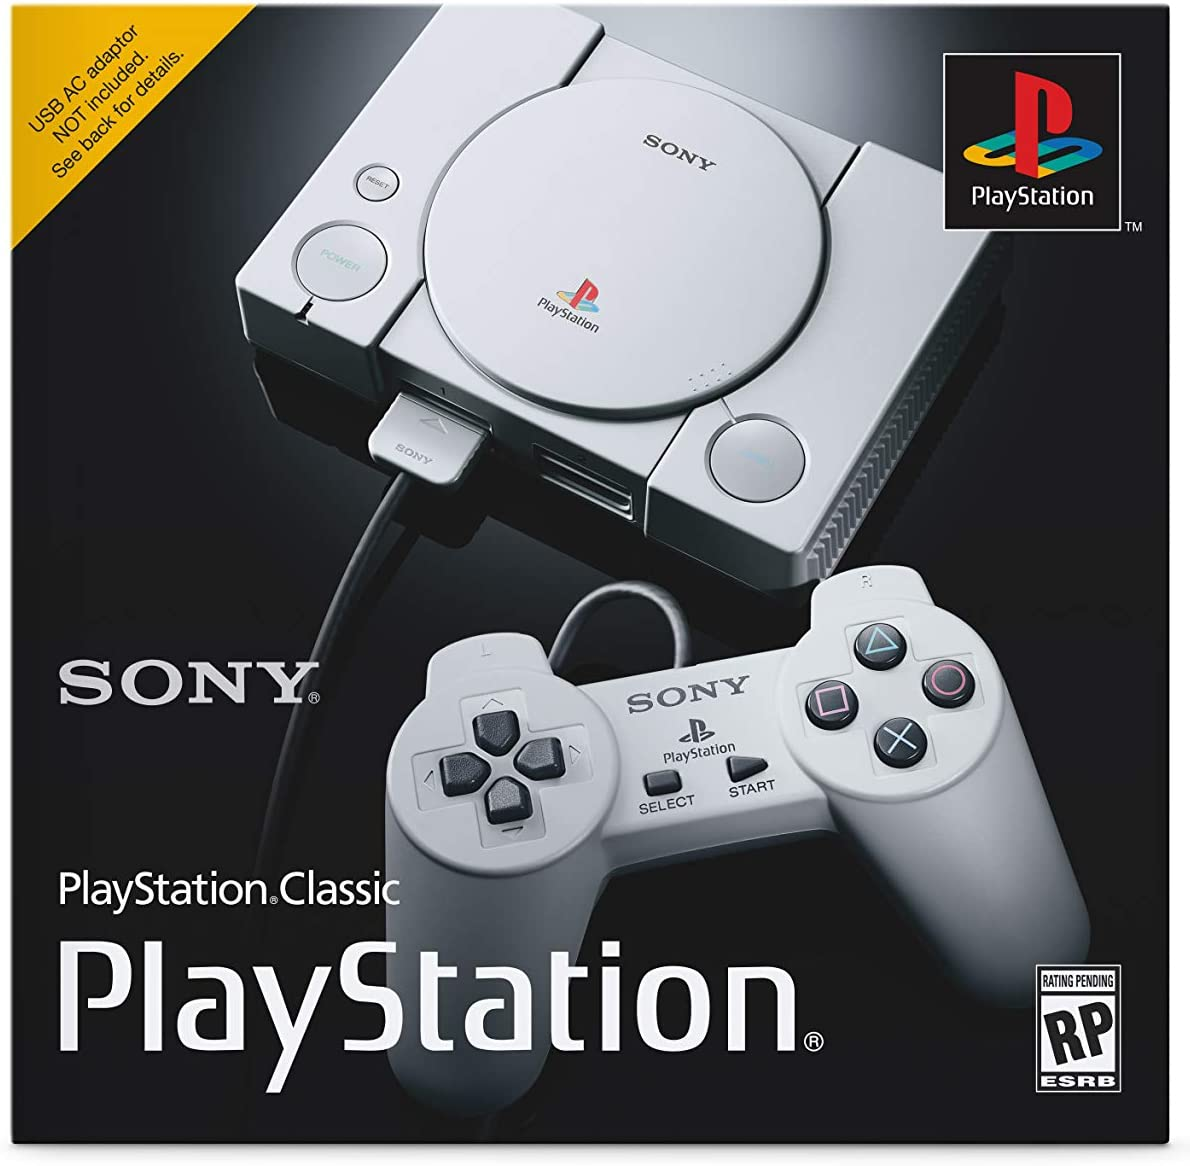 aa745d61e9df44 Amazon.com  PlayStation Classic  Video Games